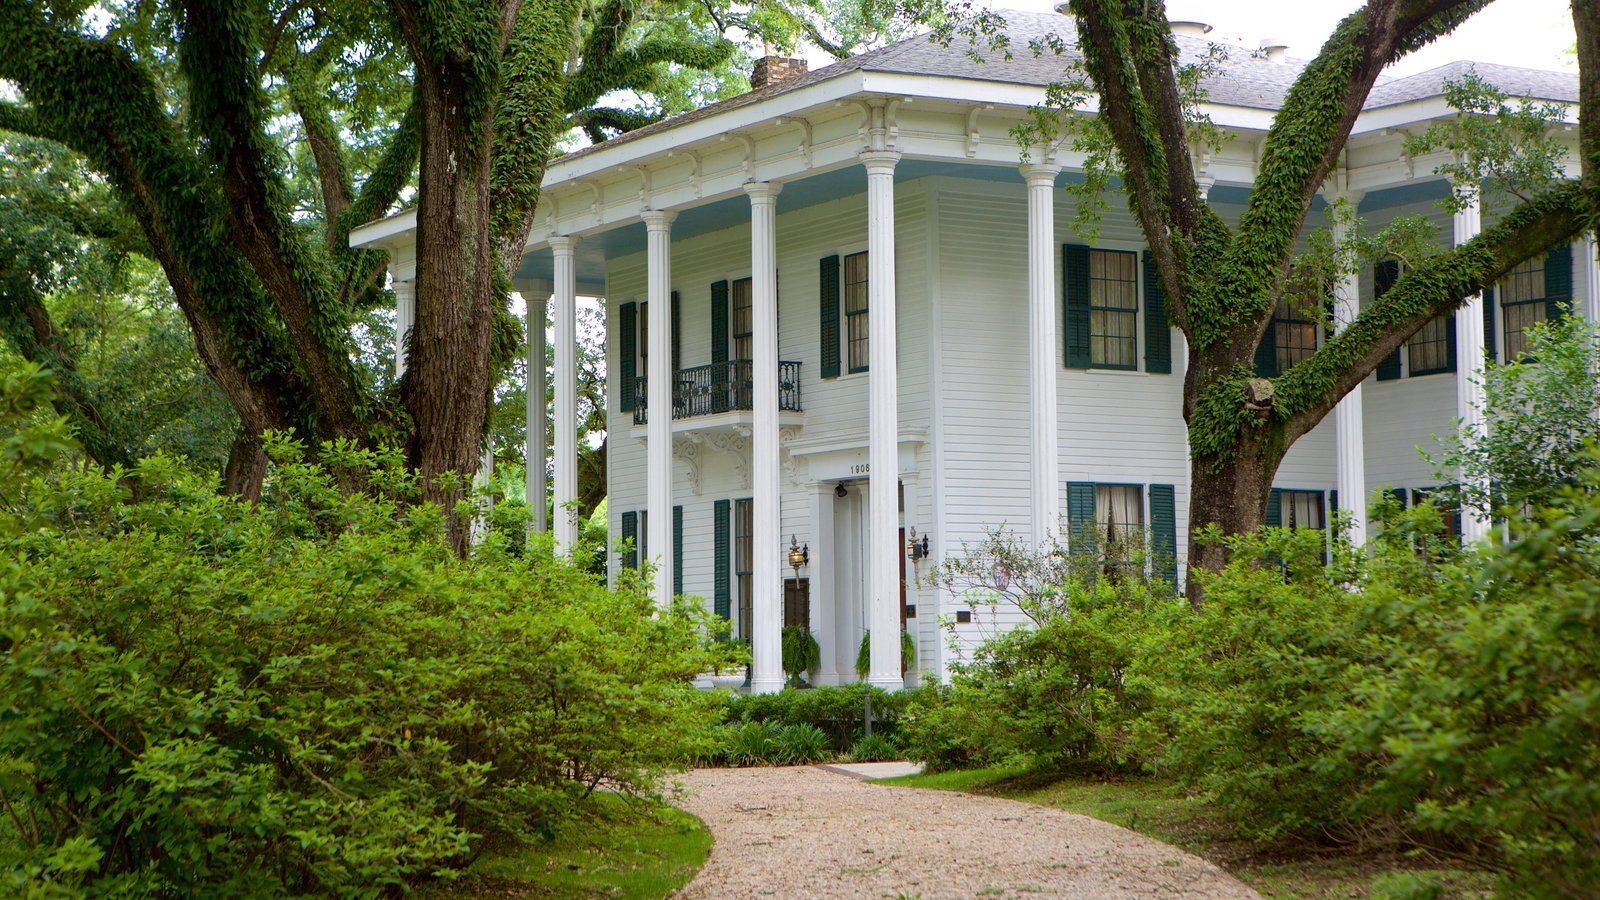 Bragg-Mitchell Mansion Pictures: View Photos & Images of Bragg ...